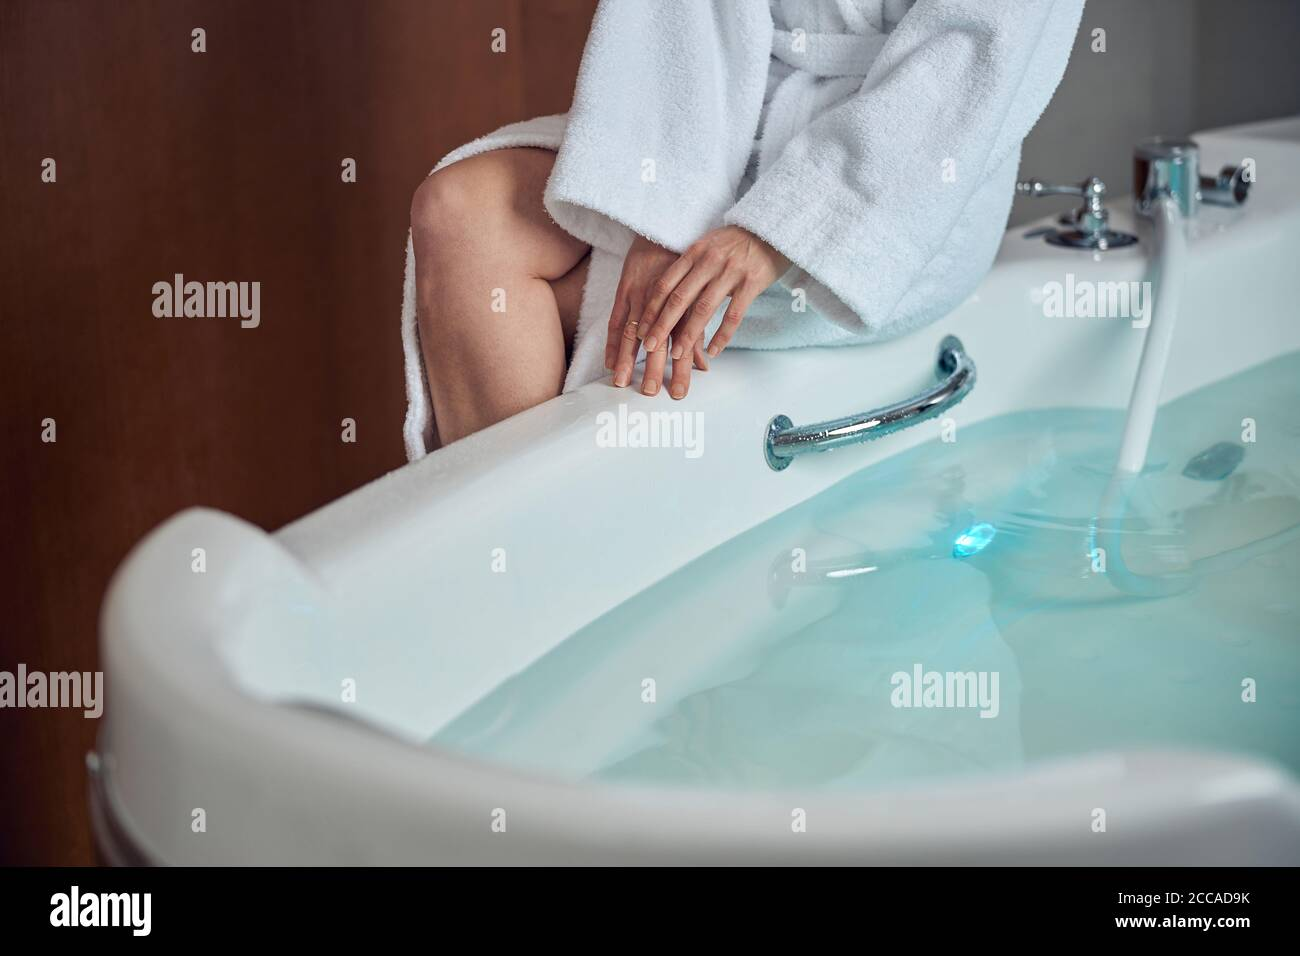 Woman getting ready for a water procedure Stock Photo